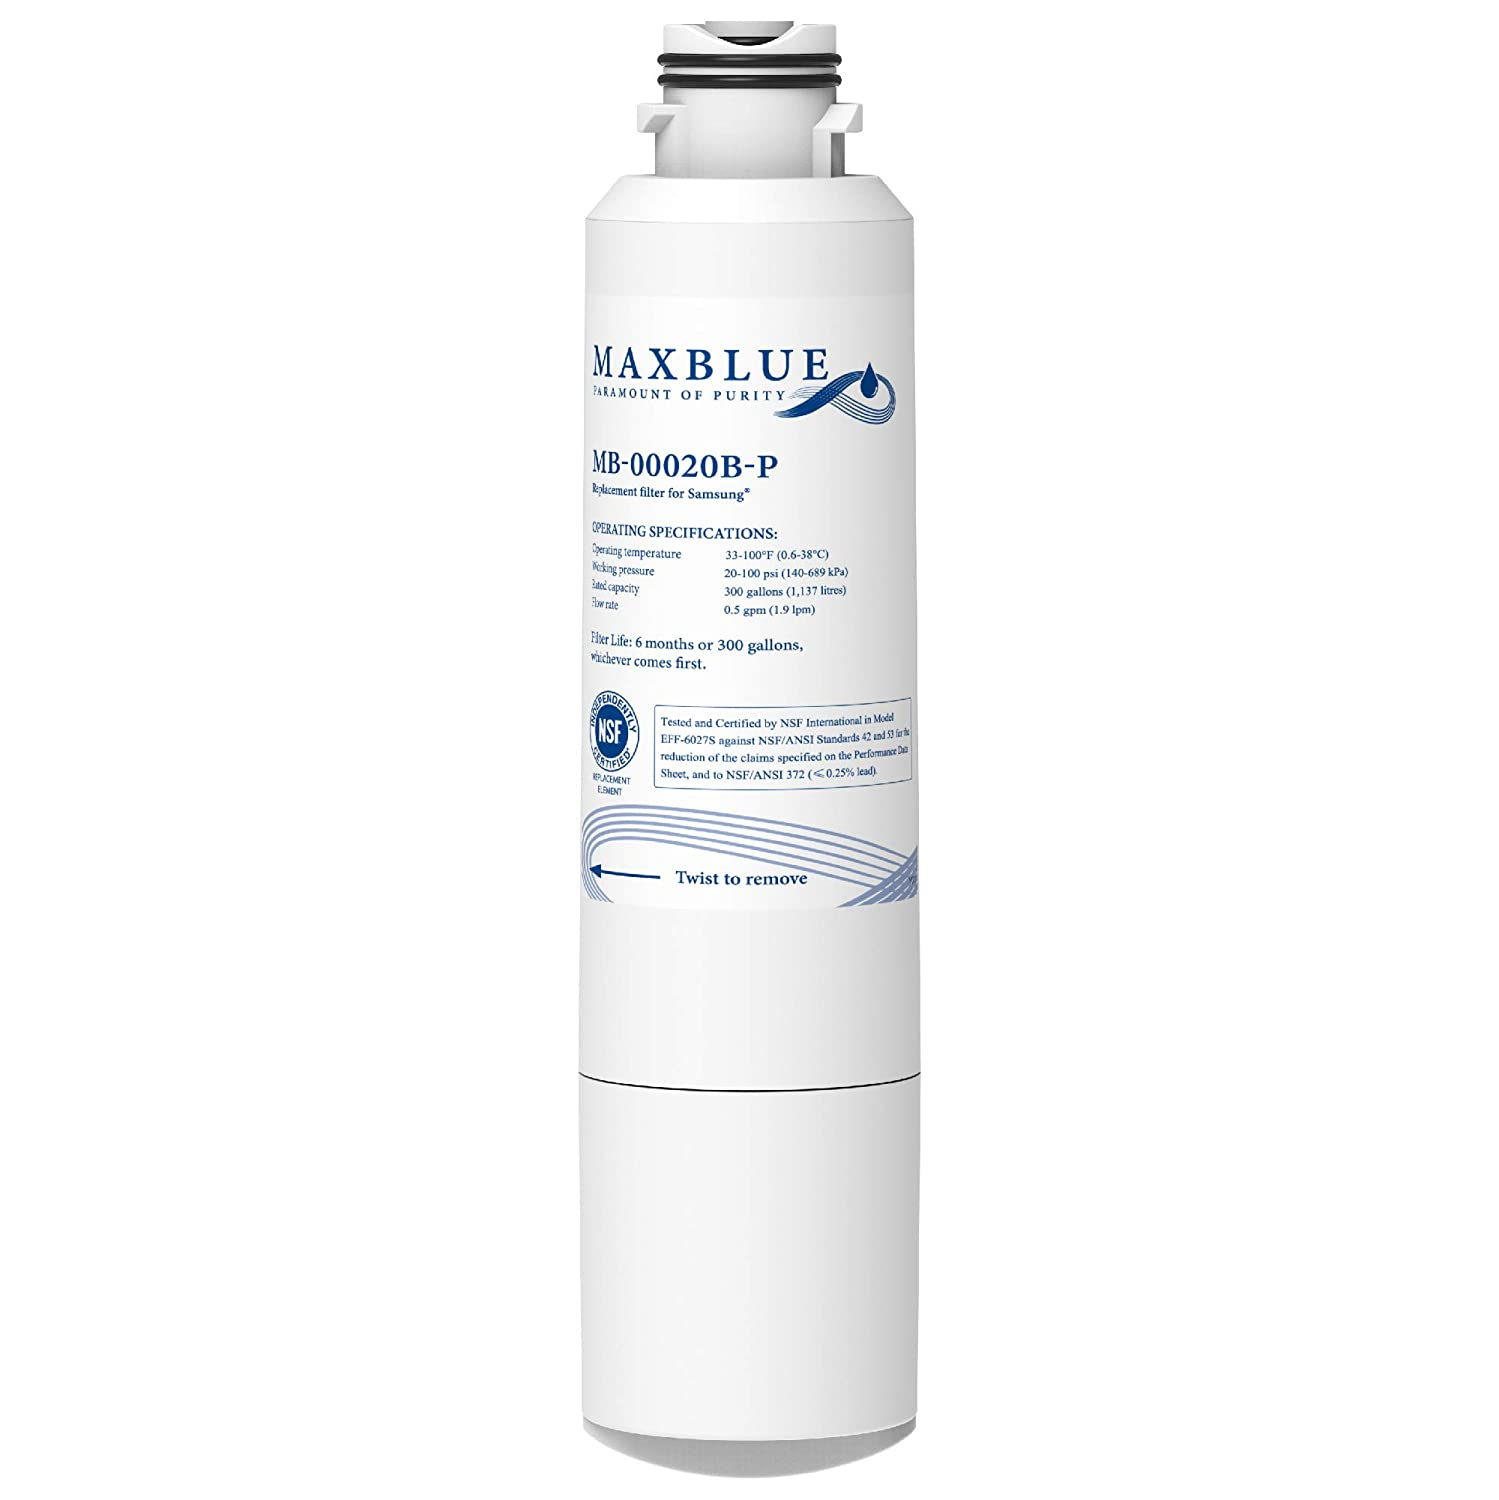 Maxblue NSF 53&42 Certified DA29-00020B Refrigerator Water Filter, Replacement for Samsung HAF-CIN/EXP, DA29-00020A/B, DA97-08006A, RF28HMEDBSR, RF4287HARS, RF263TEAESG, RH22H9010SR, Pack of 1